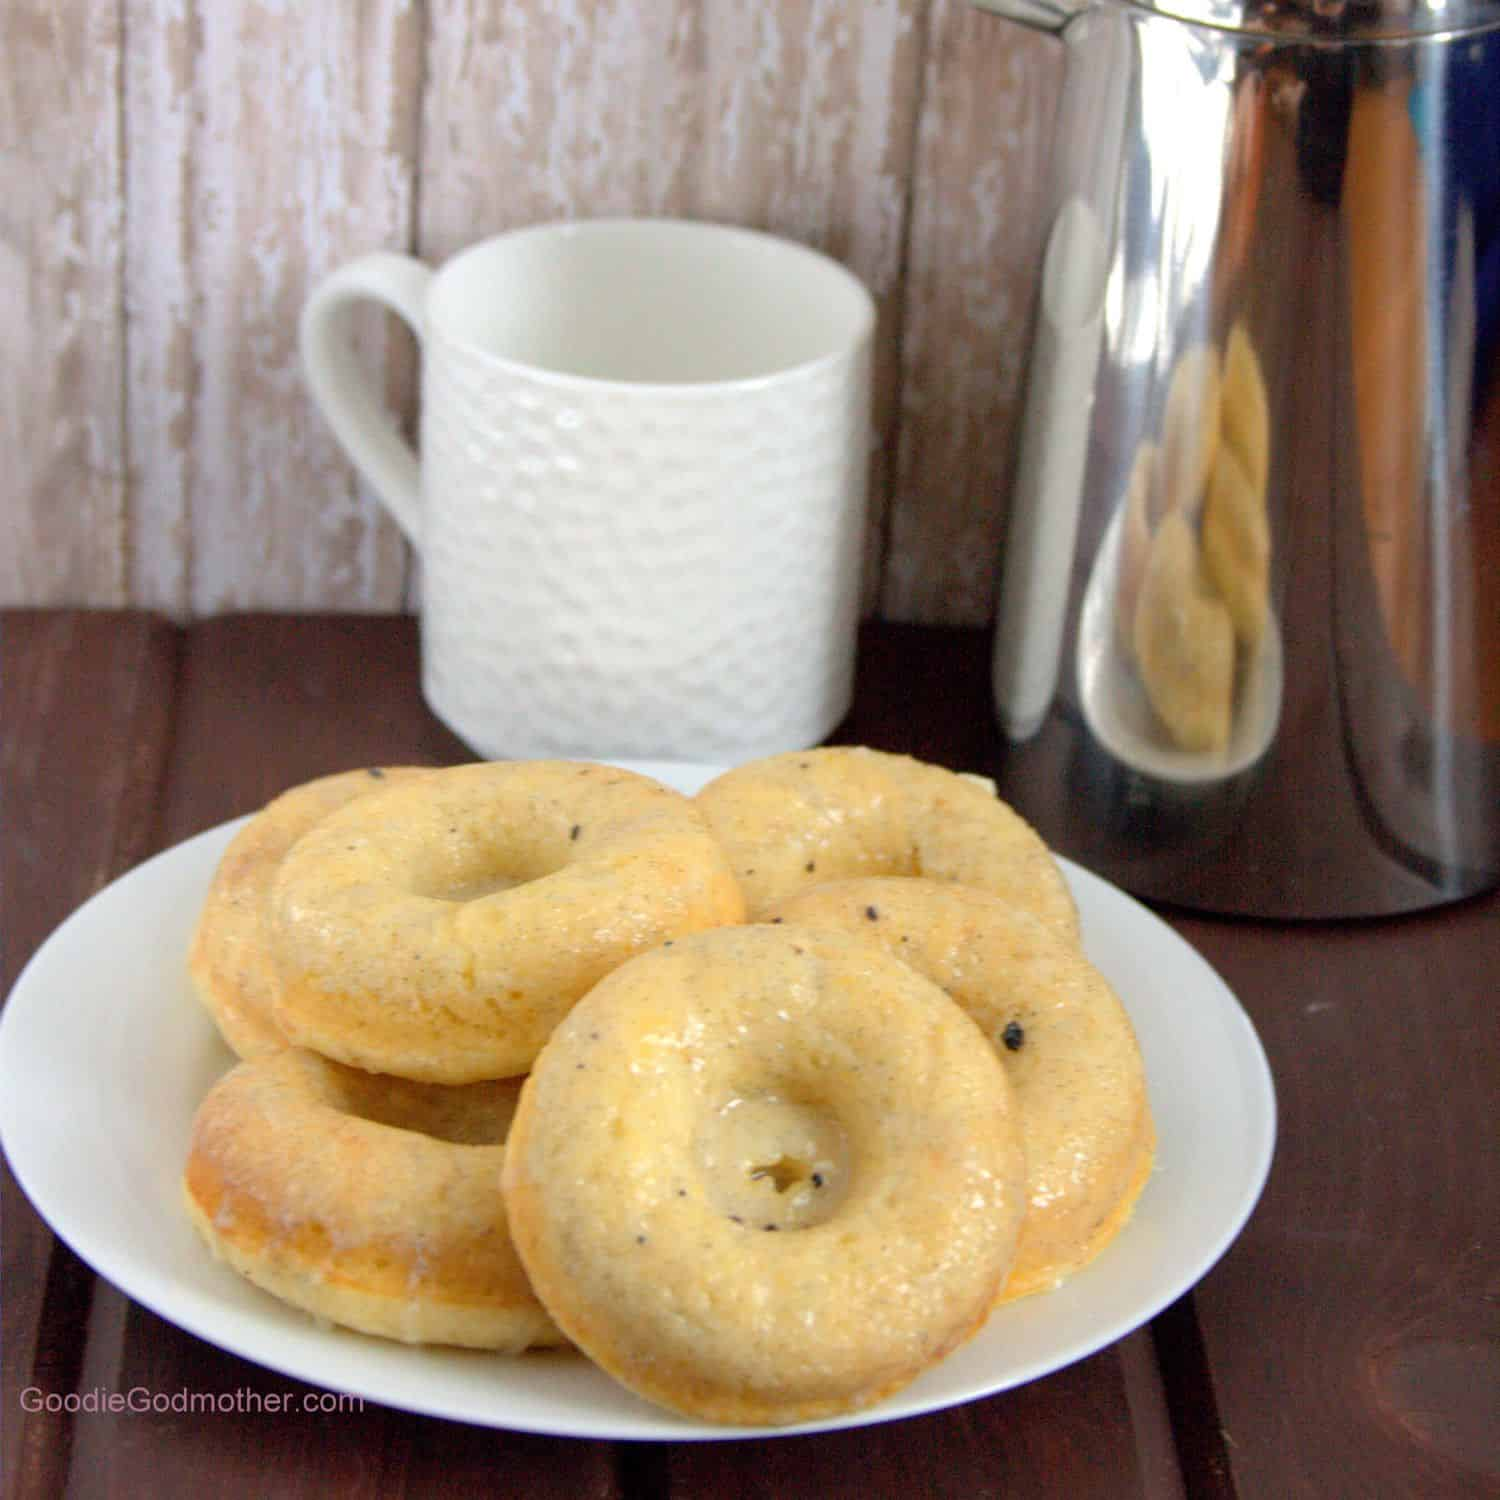 Baked Meyer lemon doughnut recipe with a vanilla bean white chocolate ganache glaze